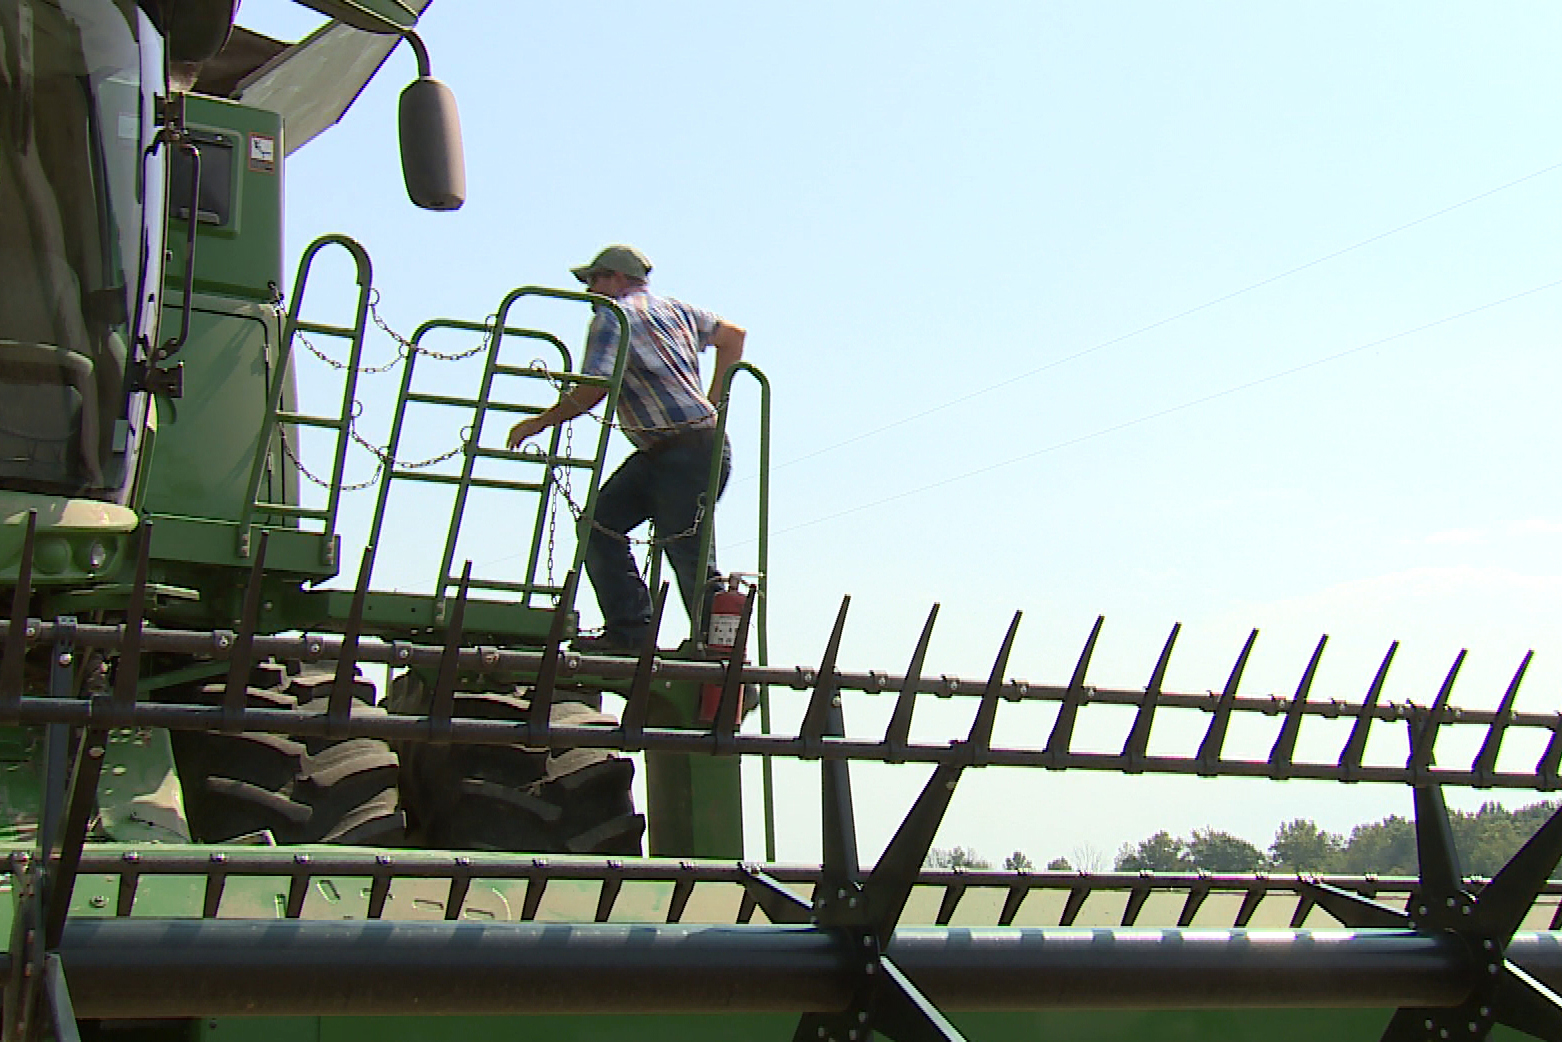 harvest-climb-on-machine_sb.jpg